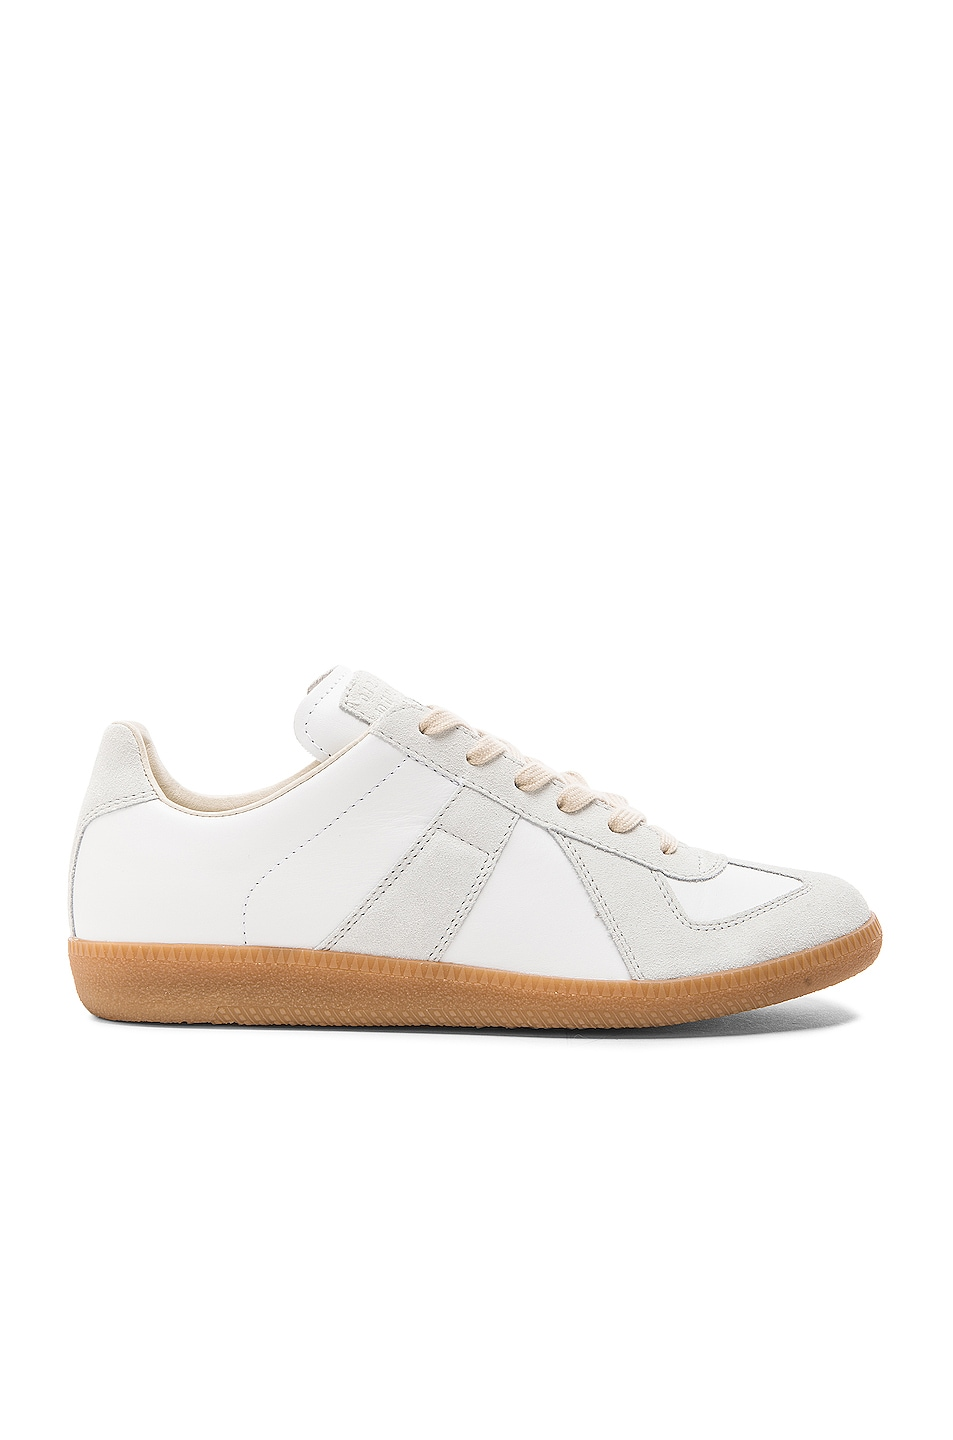 Image 1 of Maison Margiela Replica Calf & Lambskin Leather Sneakers in White